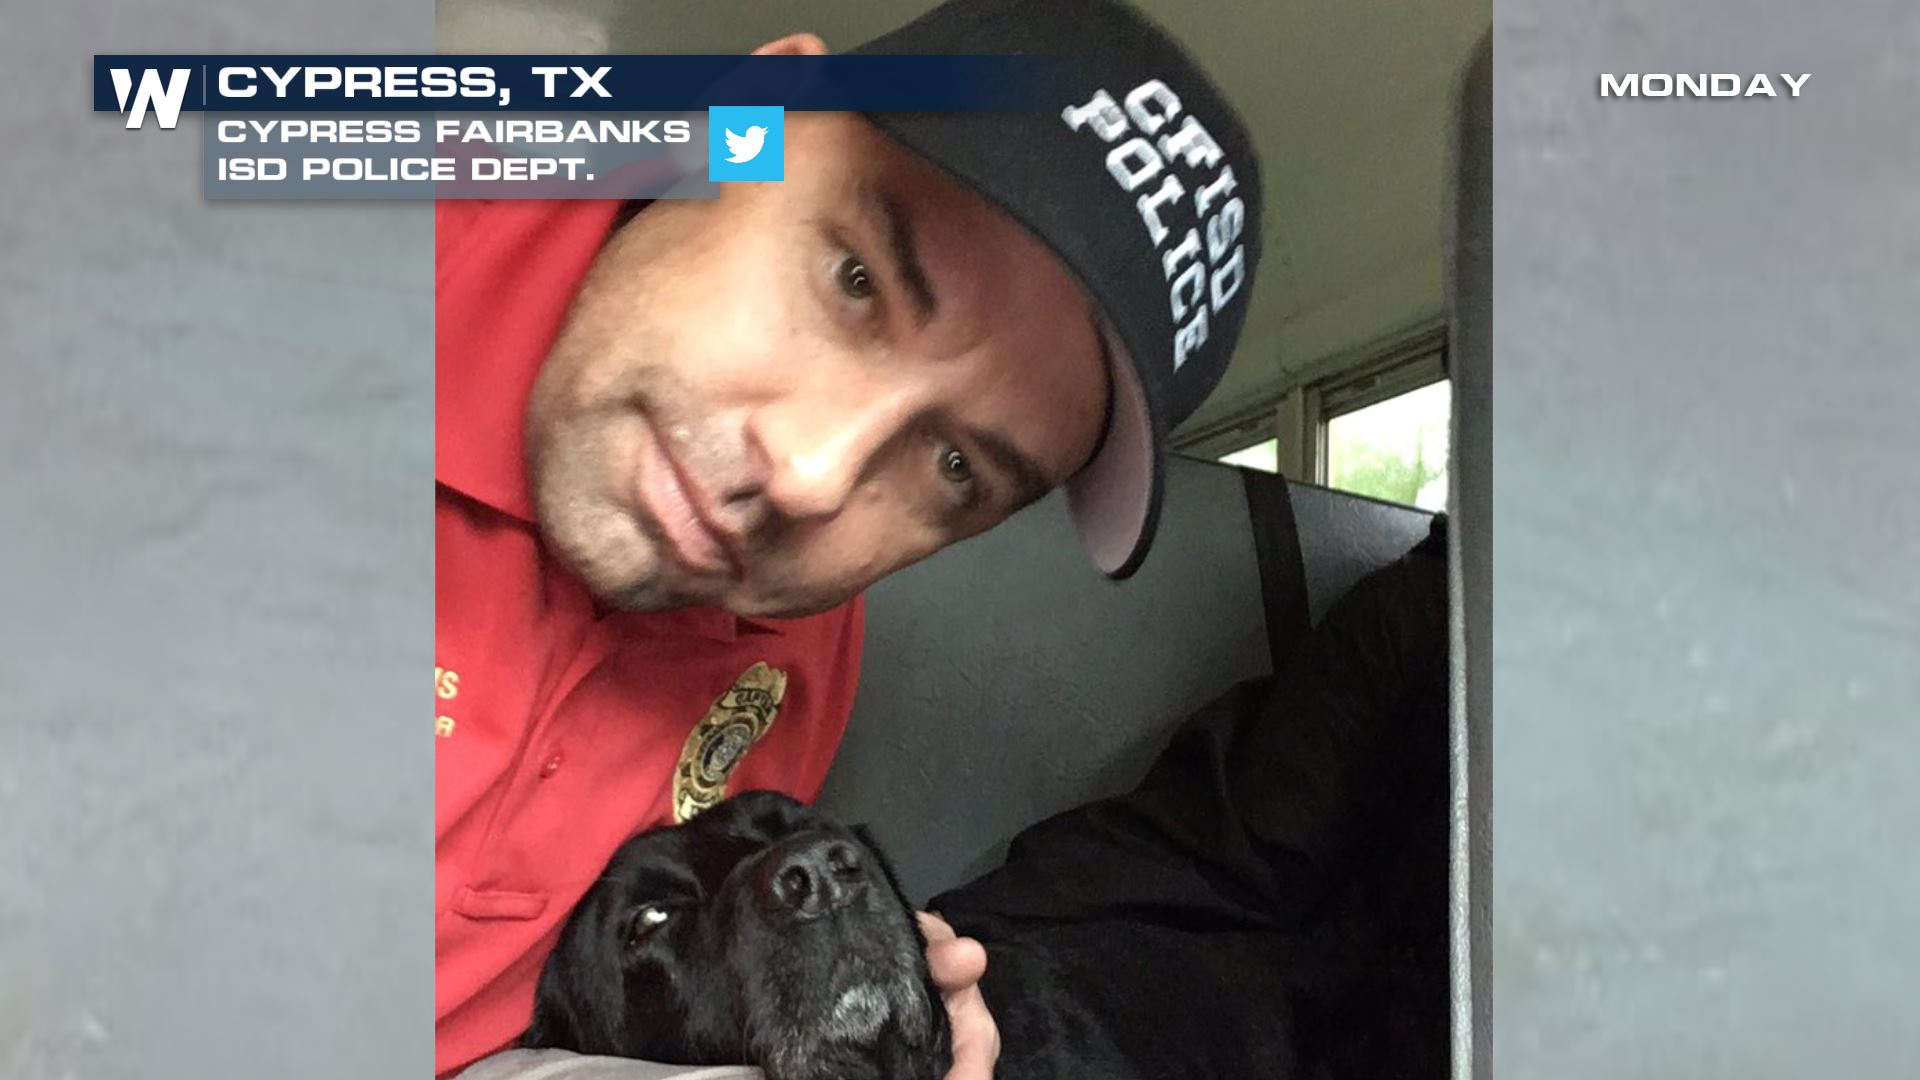 Iraq Veteran K9 Rescued Among Others From Texas Flooding